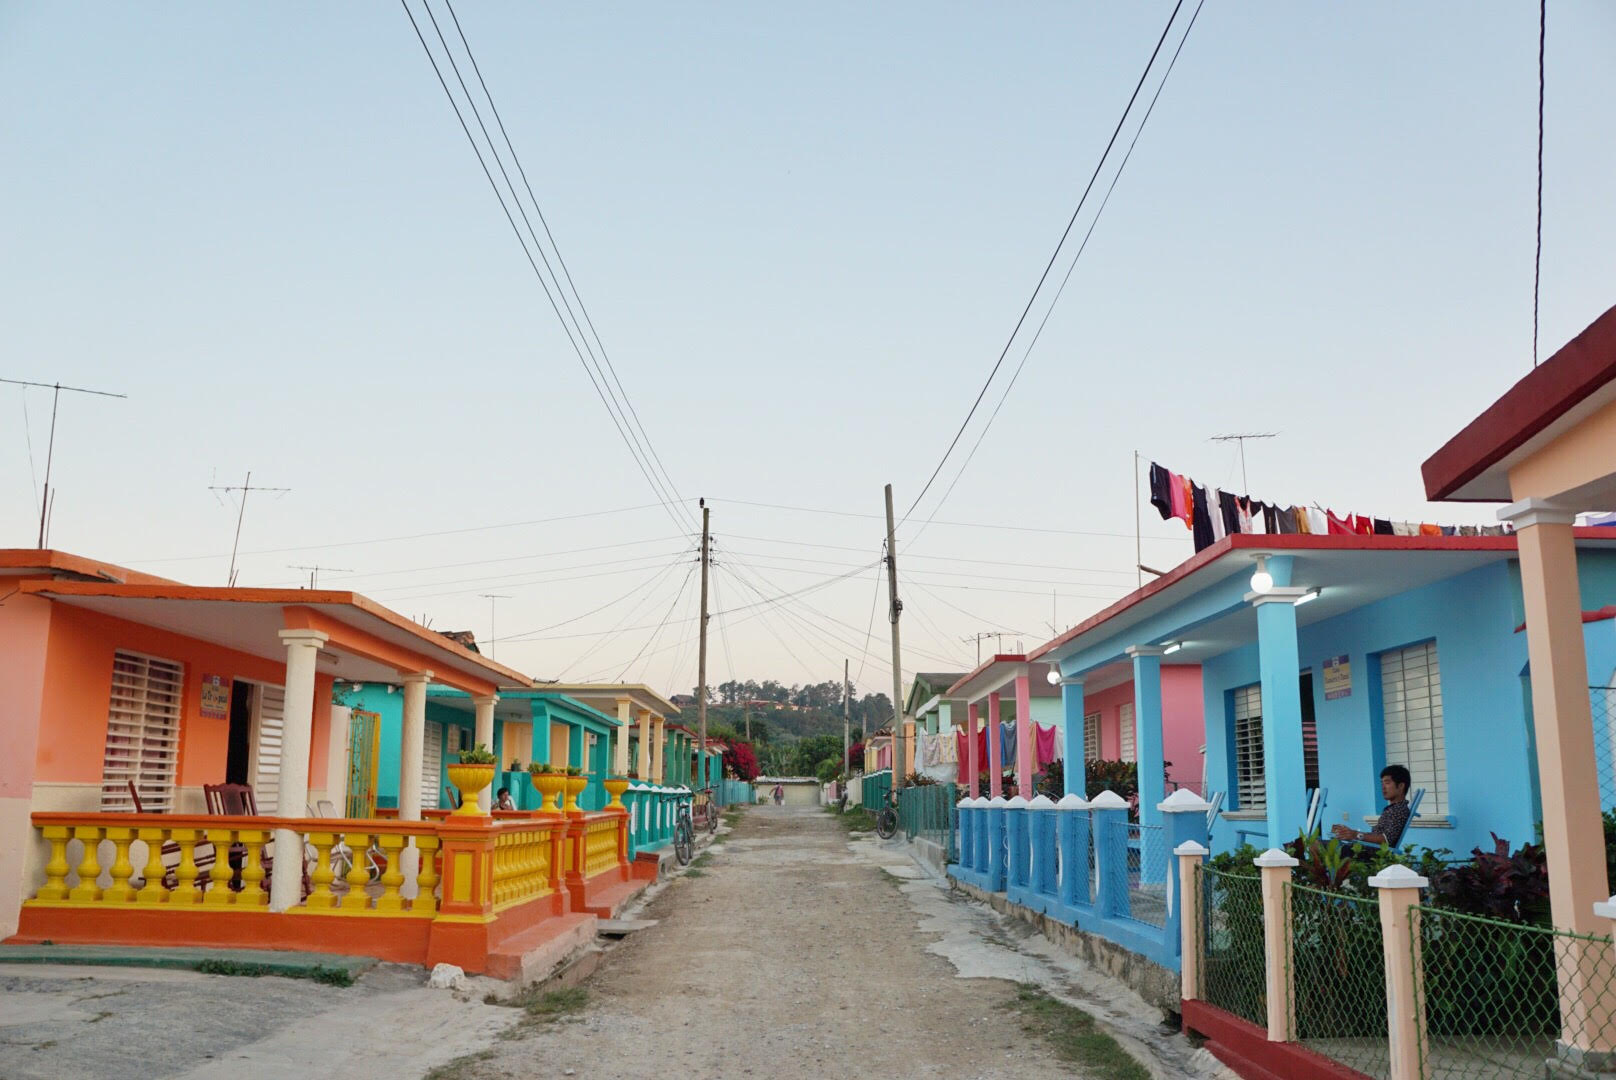 The colourful streets of Viñales